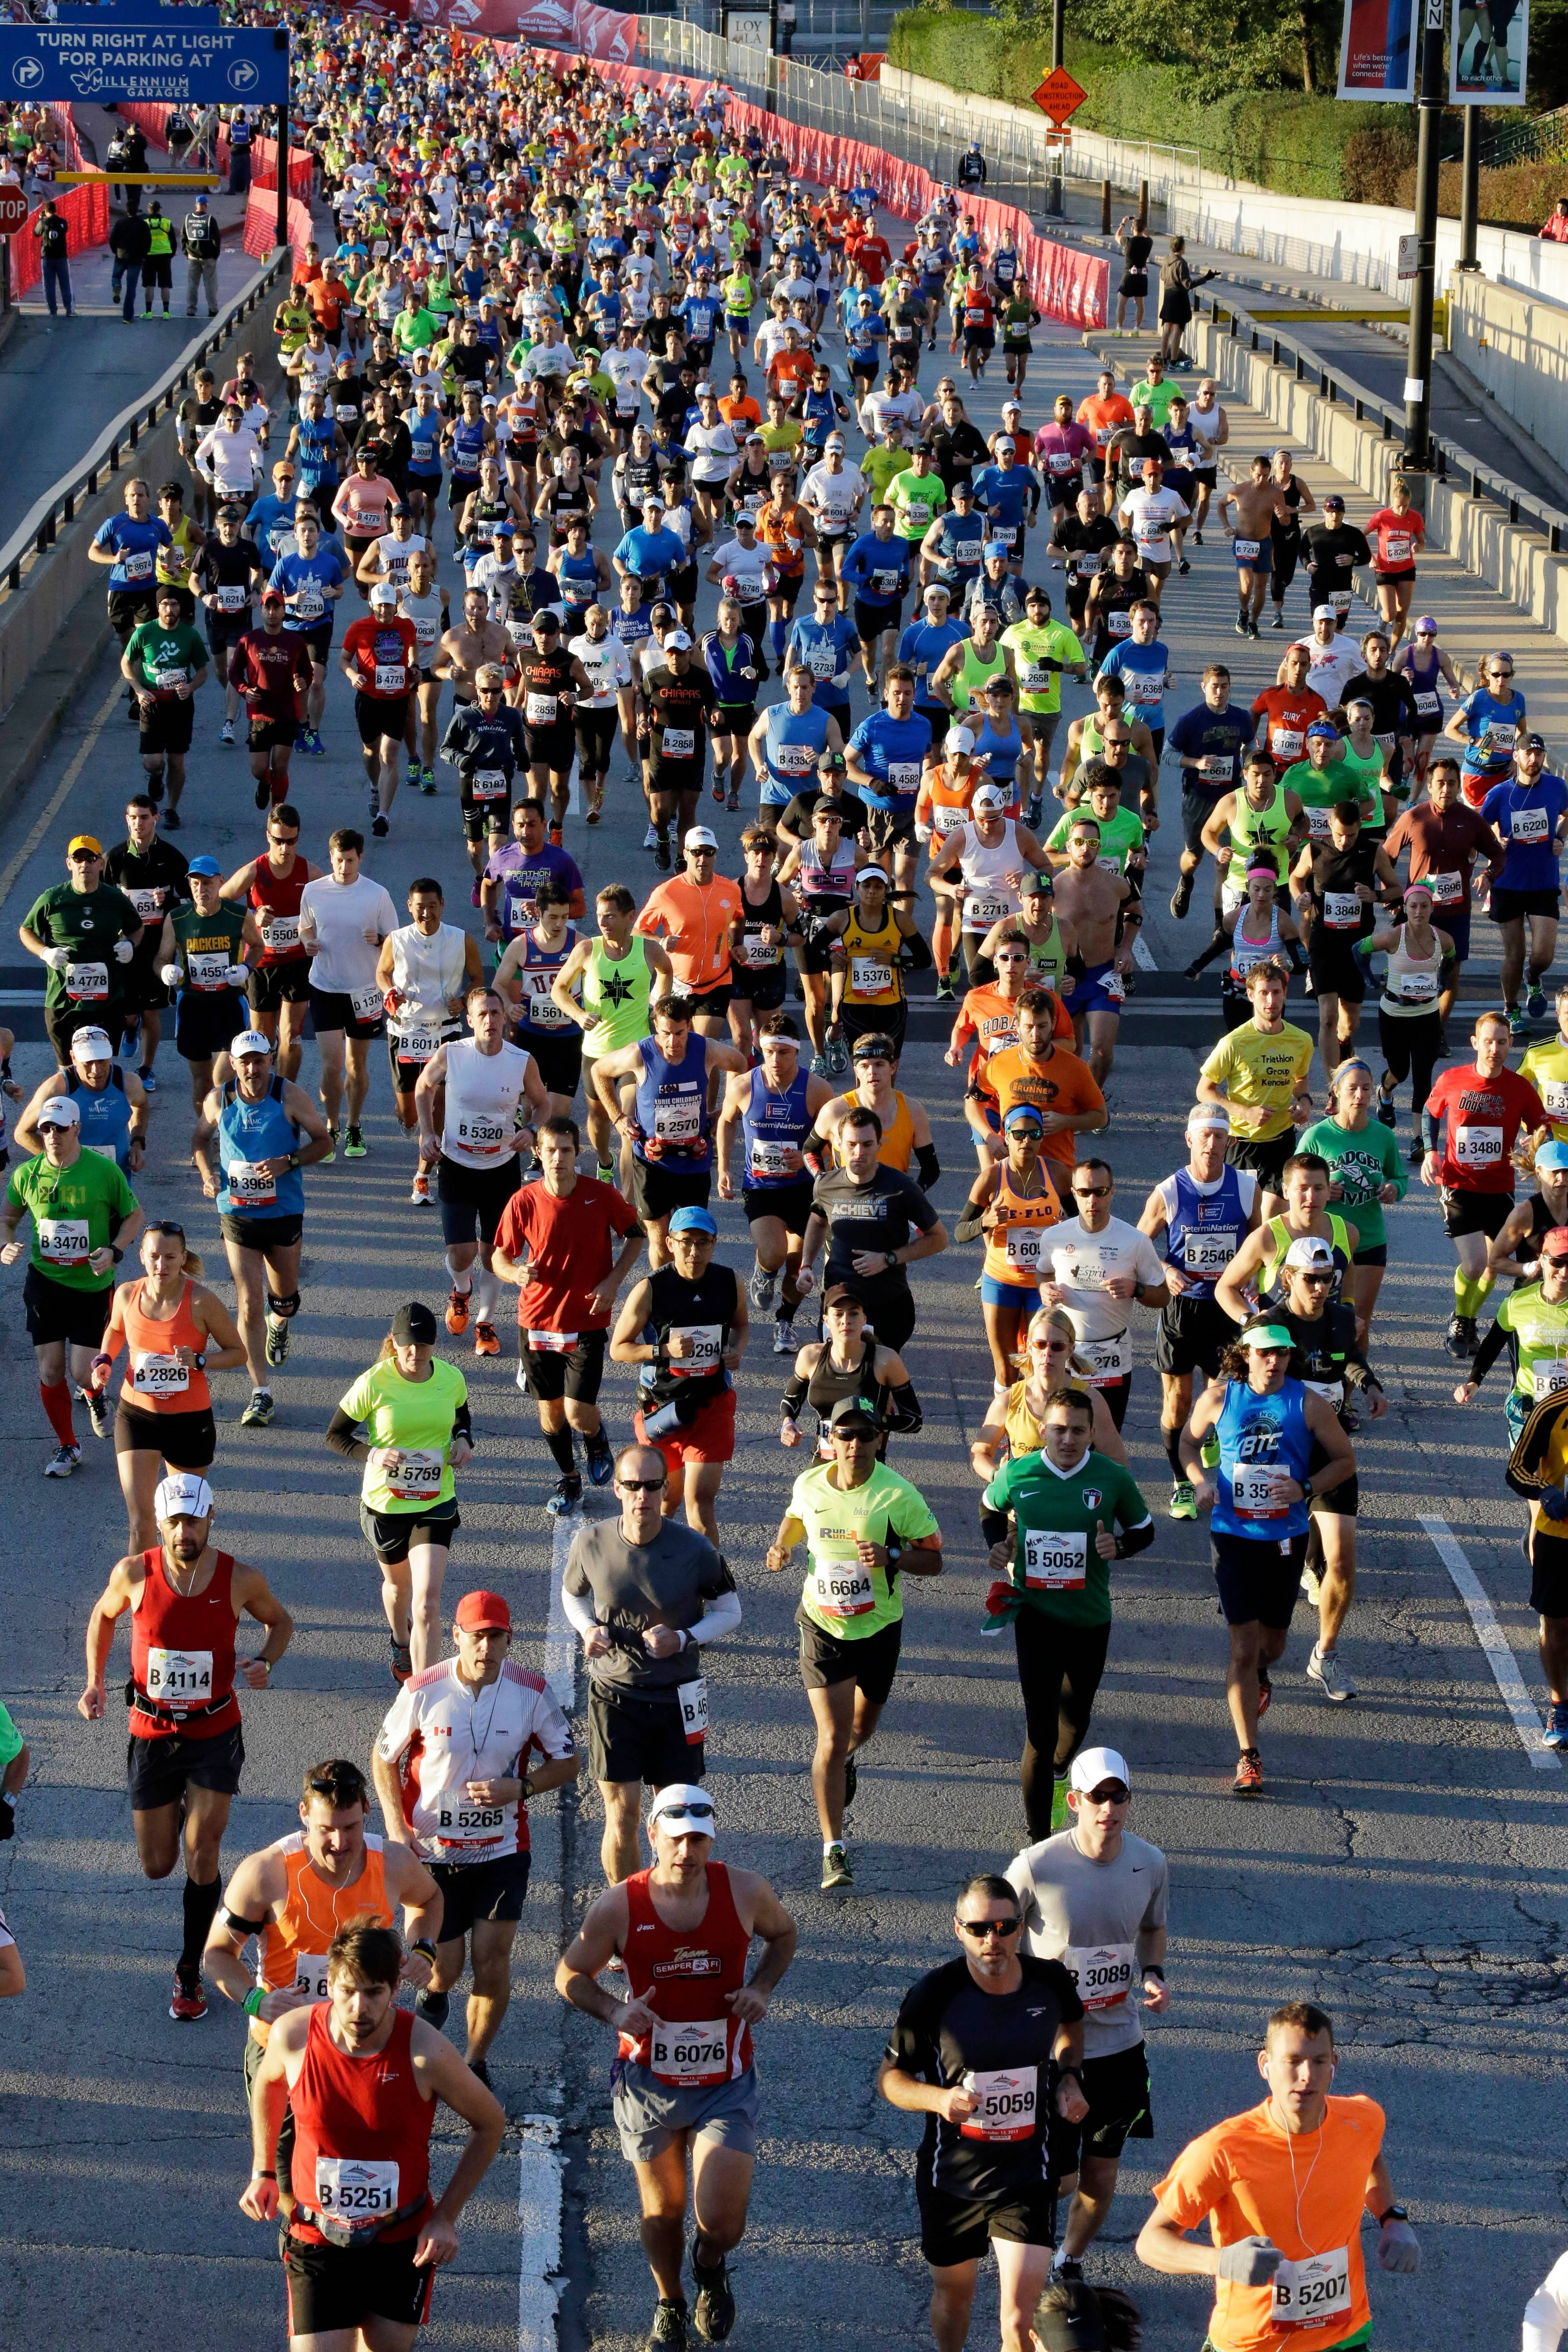 Registration is now under way for the Chicago Marathon. The race will be held Sunday, Oct. 12, with a cap of 45,000 runners.